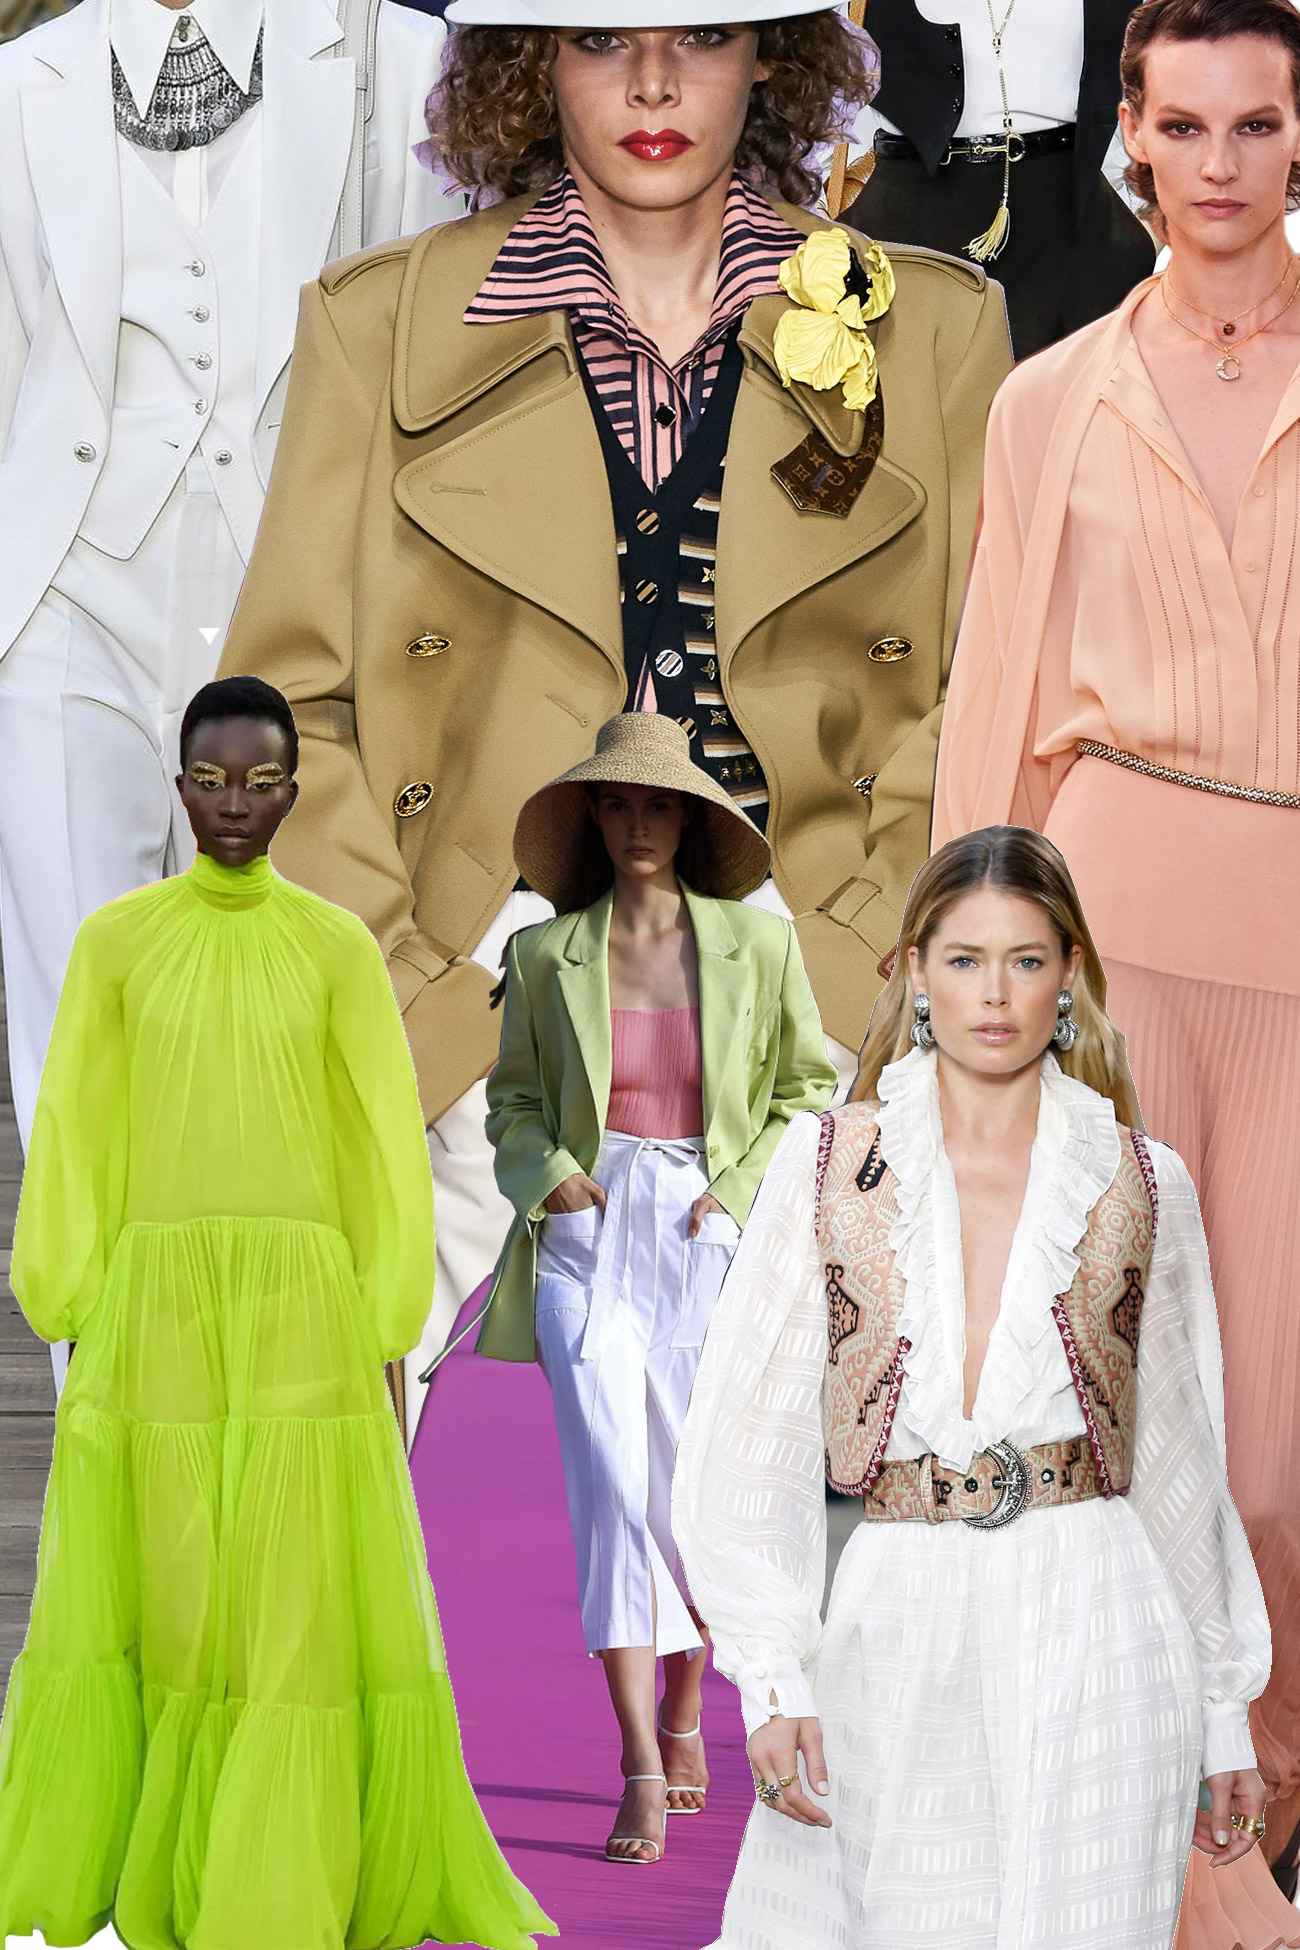 Spring/Summer 6 Fashion Trends: What To Wear This Season